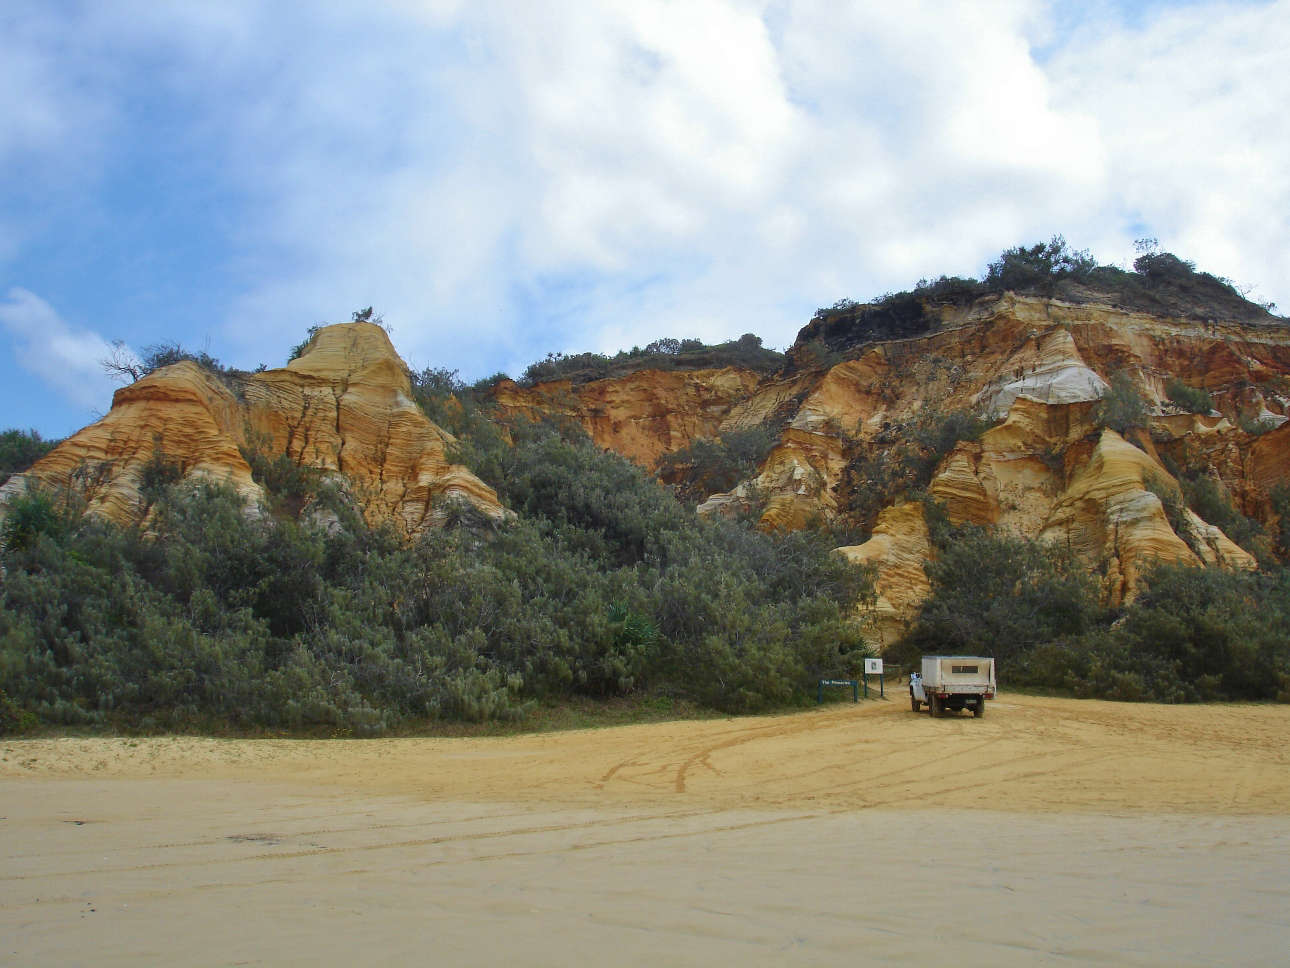 The Cathedrals - a unique rock formation on Fraser Island